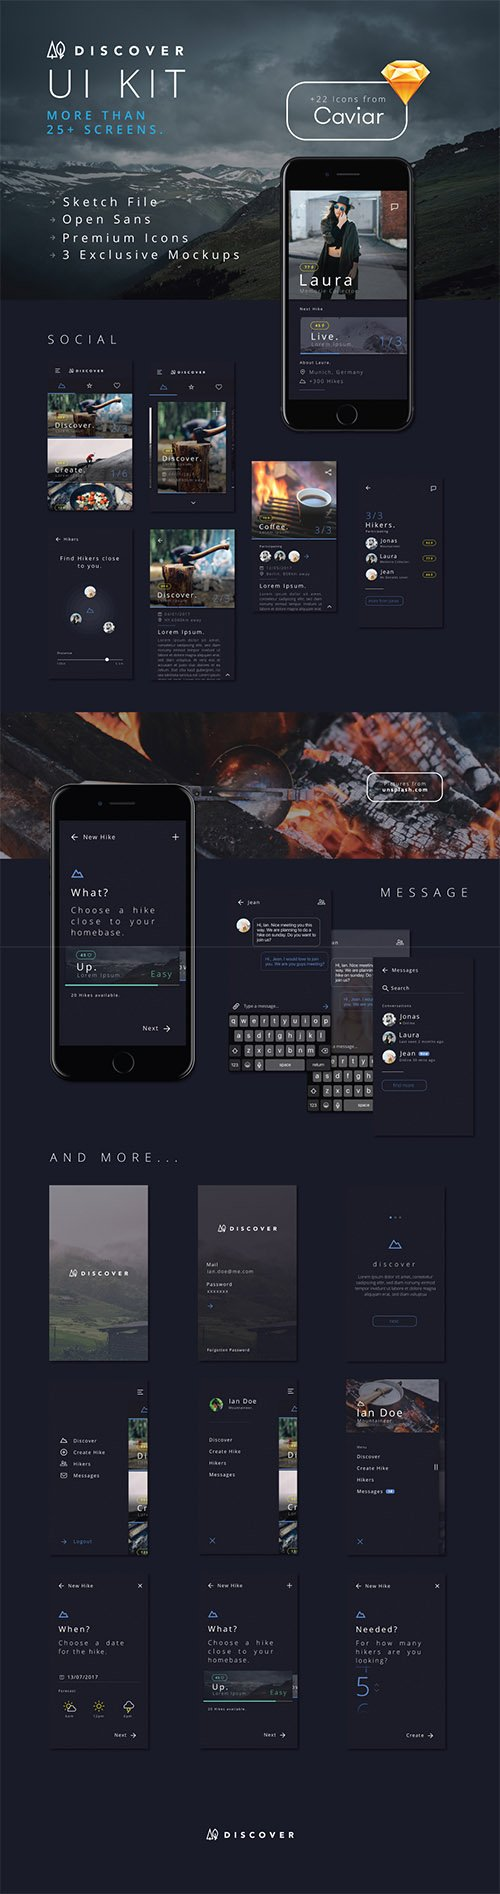 Discover UI Kit - 27 Premium iOS screens & 22 icons by Caviar